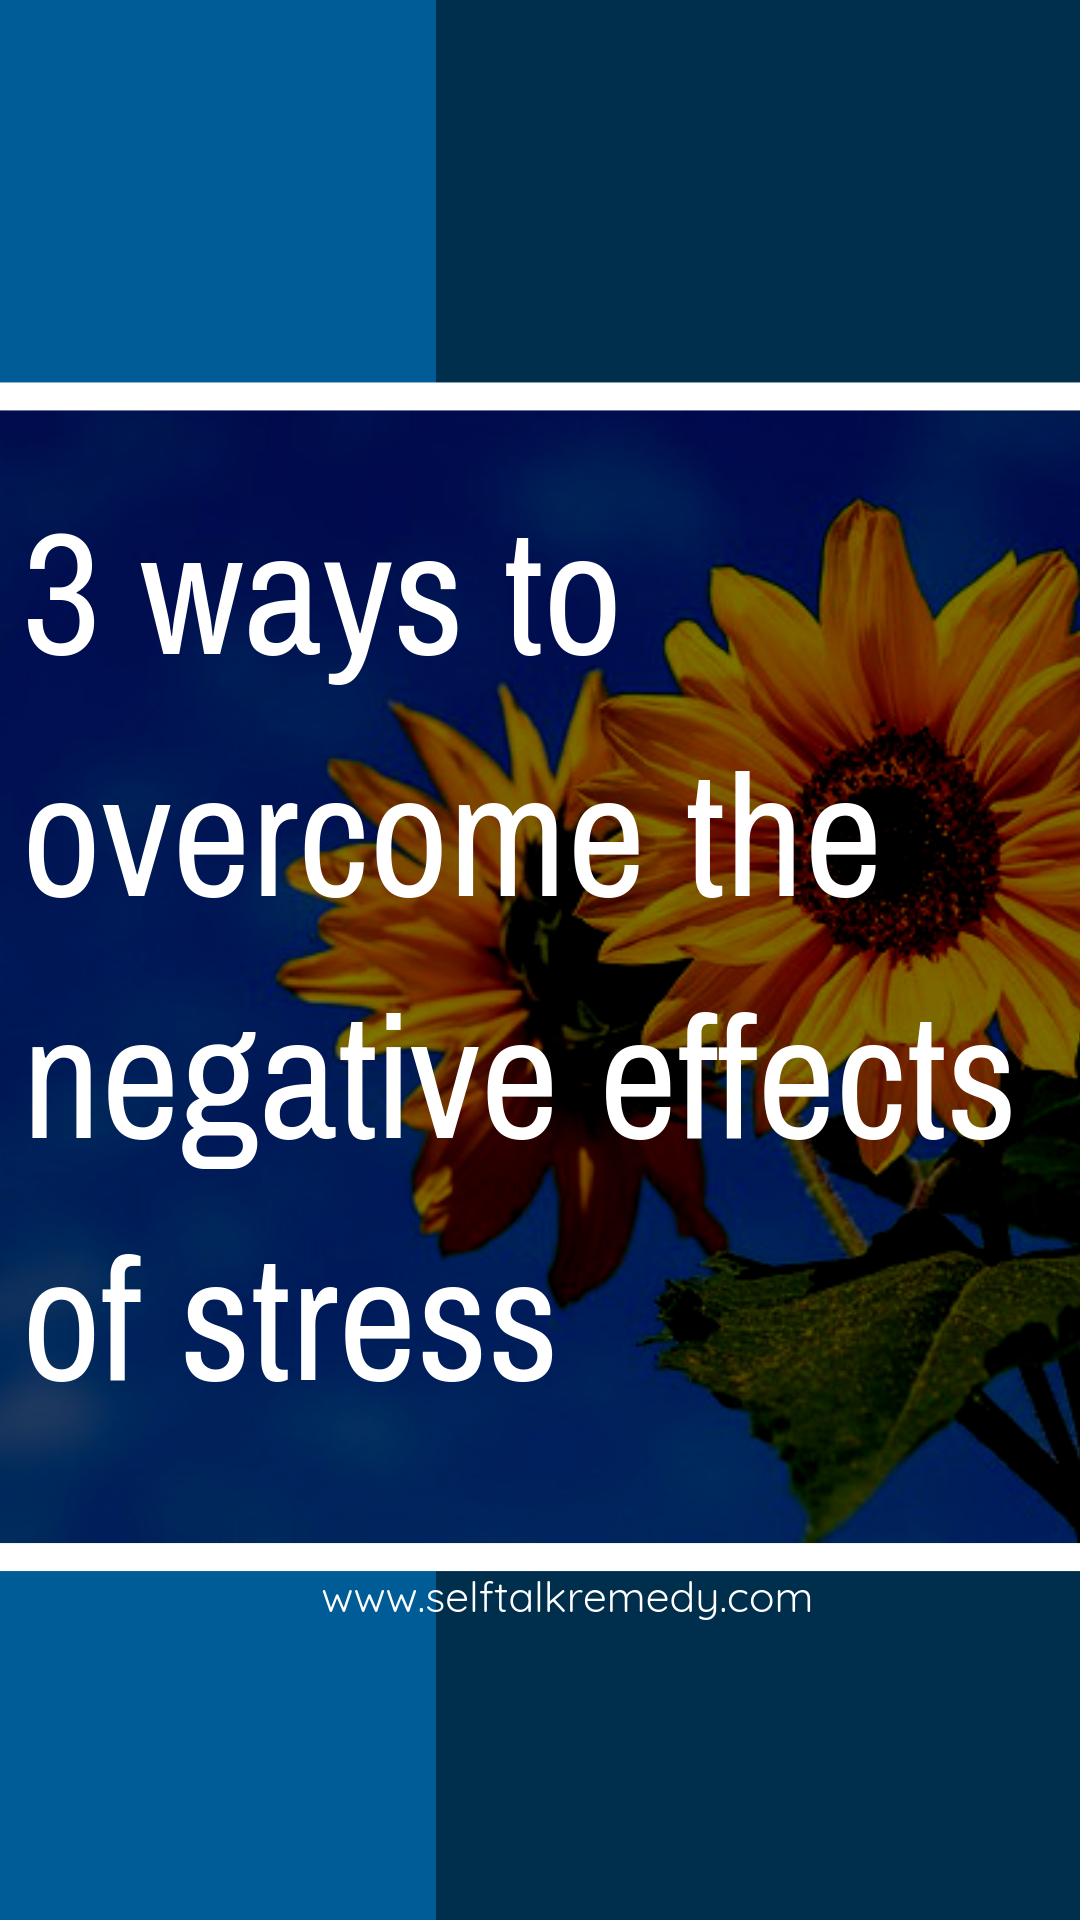 3 Ways To Overcome The Negative Effects Of Stress